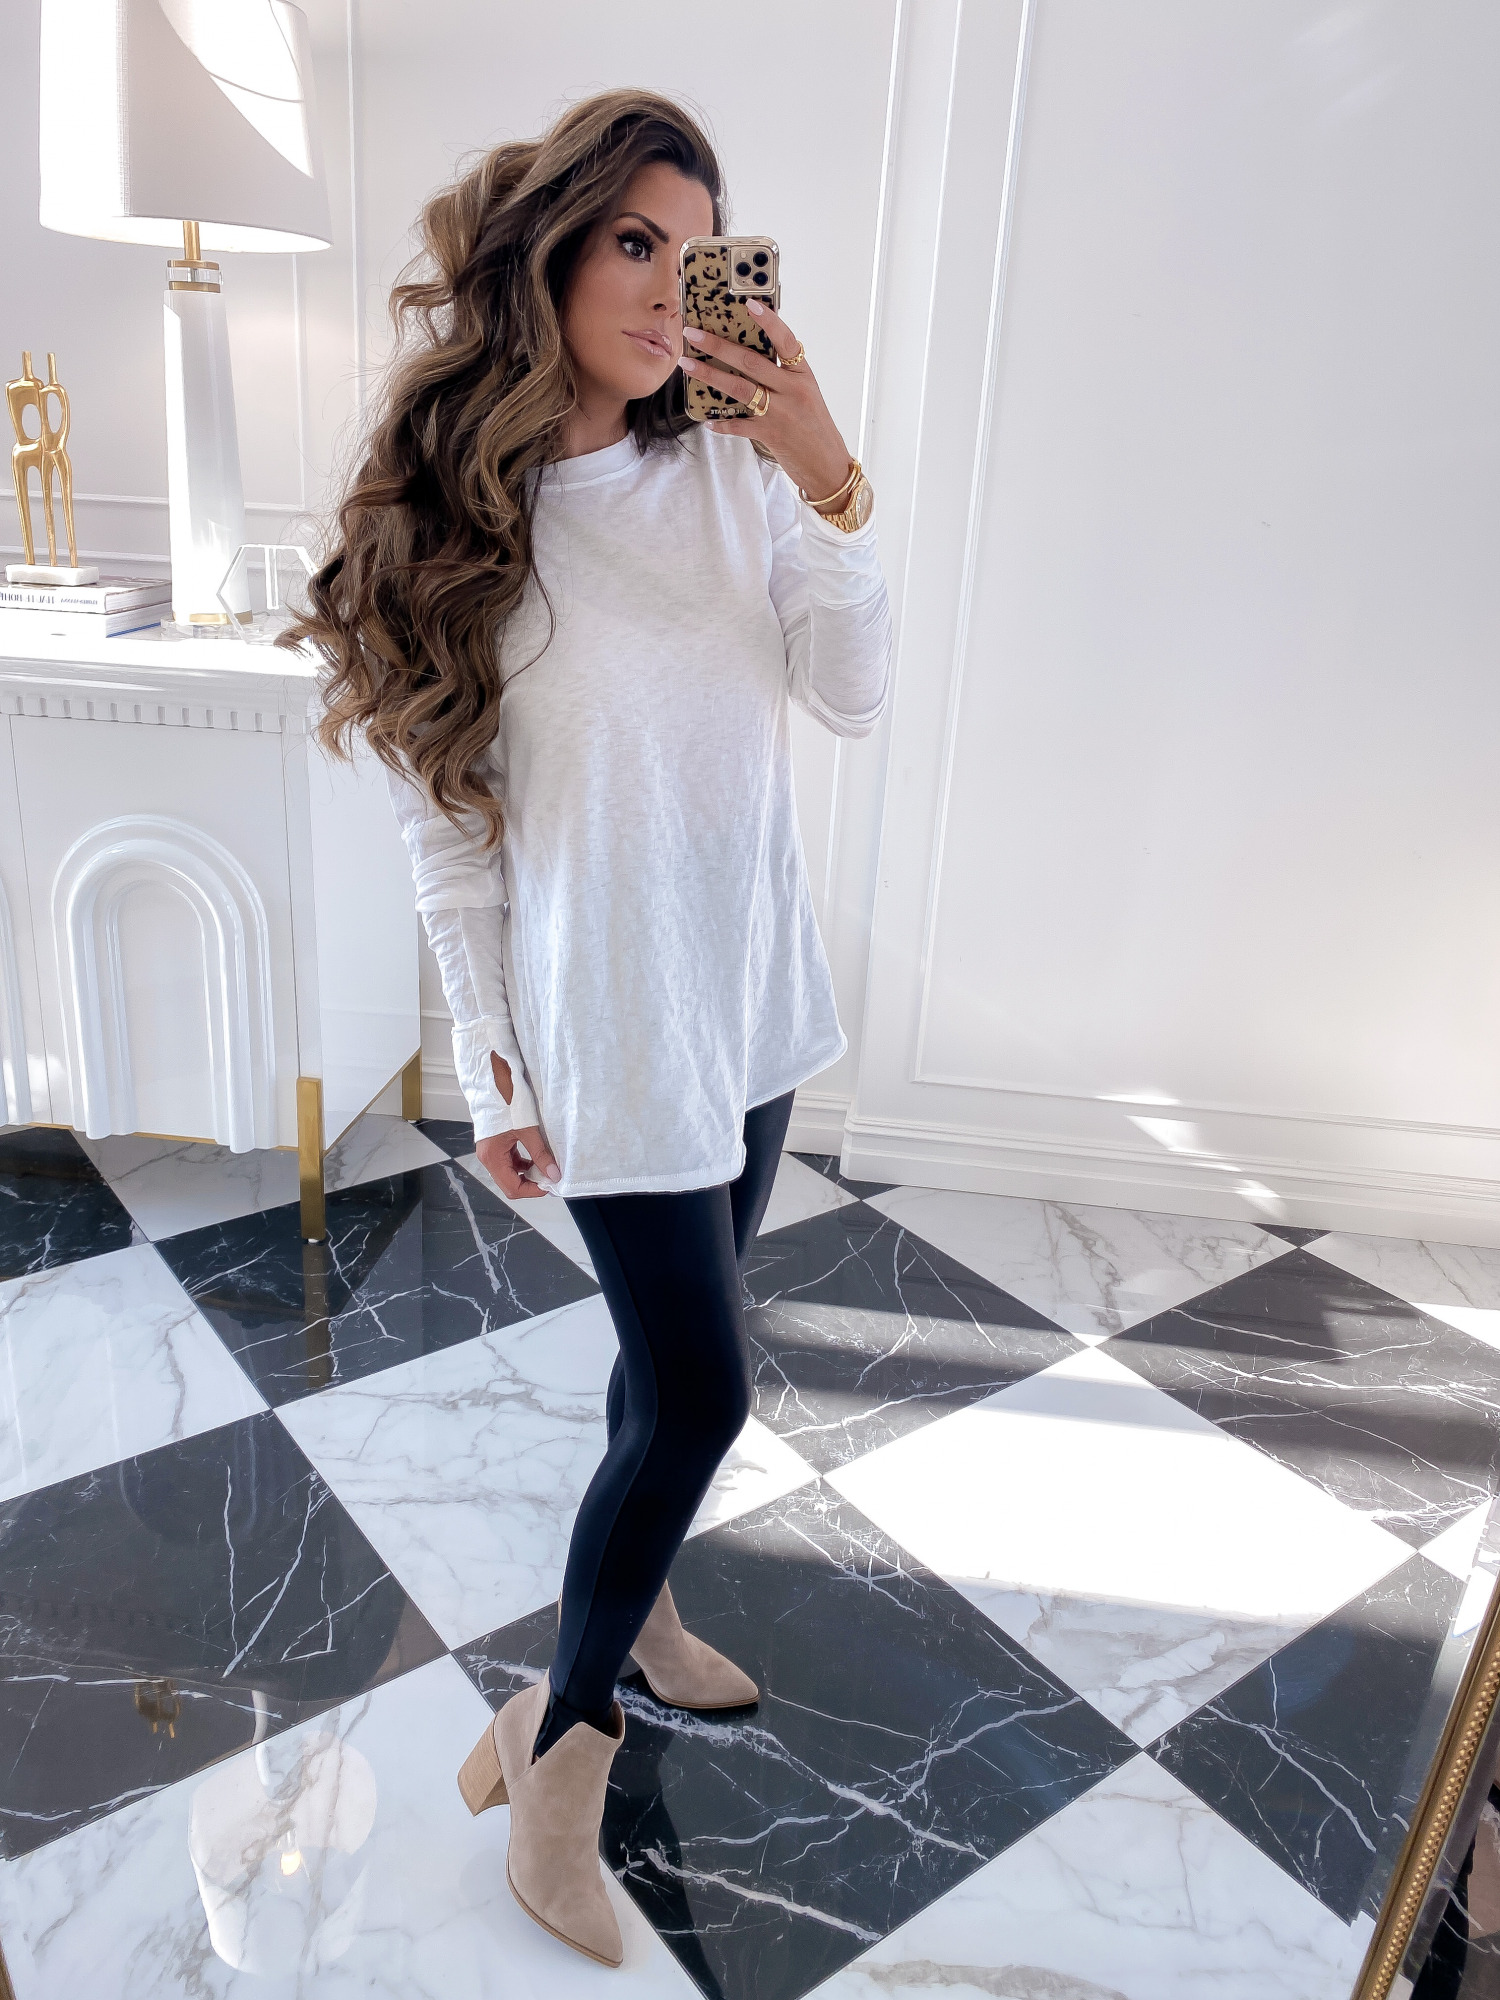 Nsale 2020 must have best of sale blog post 2020 | Nordstrom Anniversary Sale by popular US fashion blog, The Sweetest Thing: collage image of Emily Gemma wearing a Free People Arden Extra Long Cotton Top, Steve Madden Kaylah Pointed Toe Bootie, and Zella Live In High Waist Leggings.